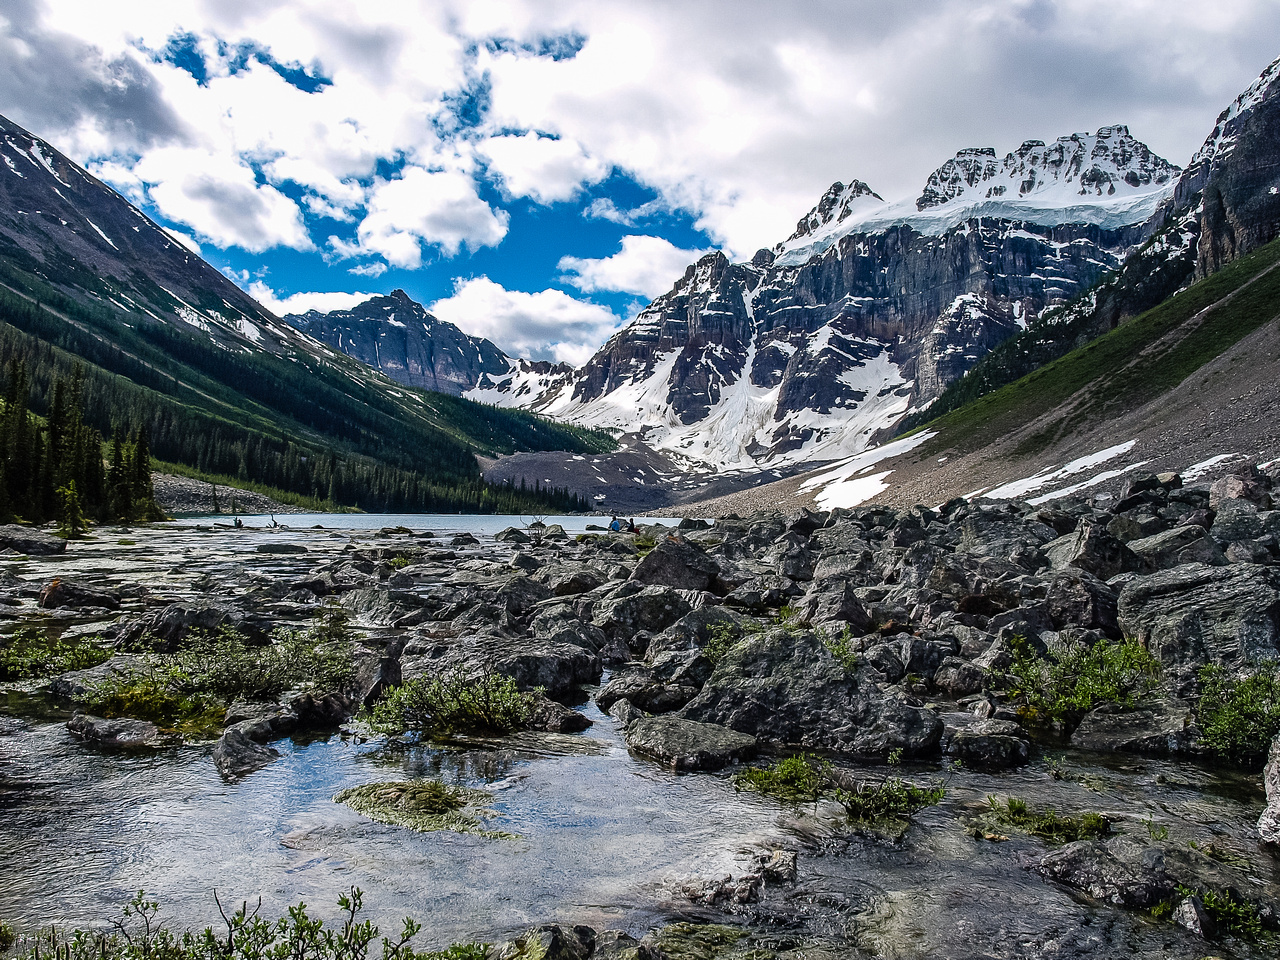 The Consolation Lakes are spectacular. Bell, Bident and Quadra rise above from L to R.